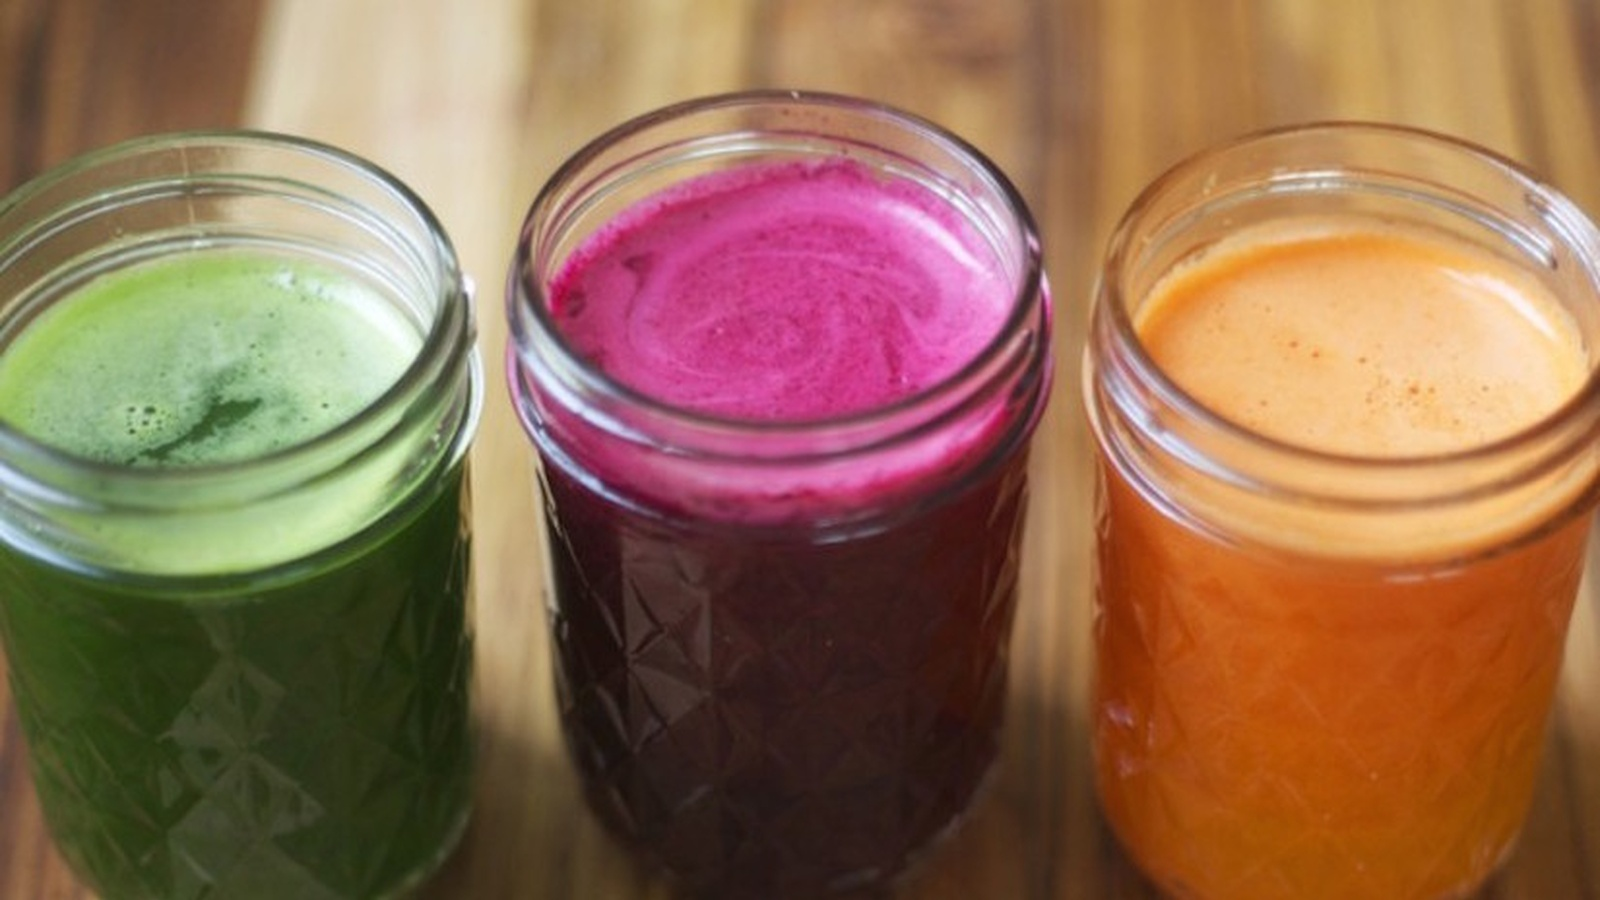 3 Drool-Worthy Juice Recipes To Make At Home